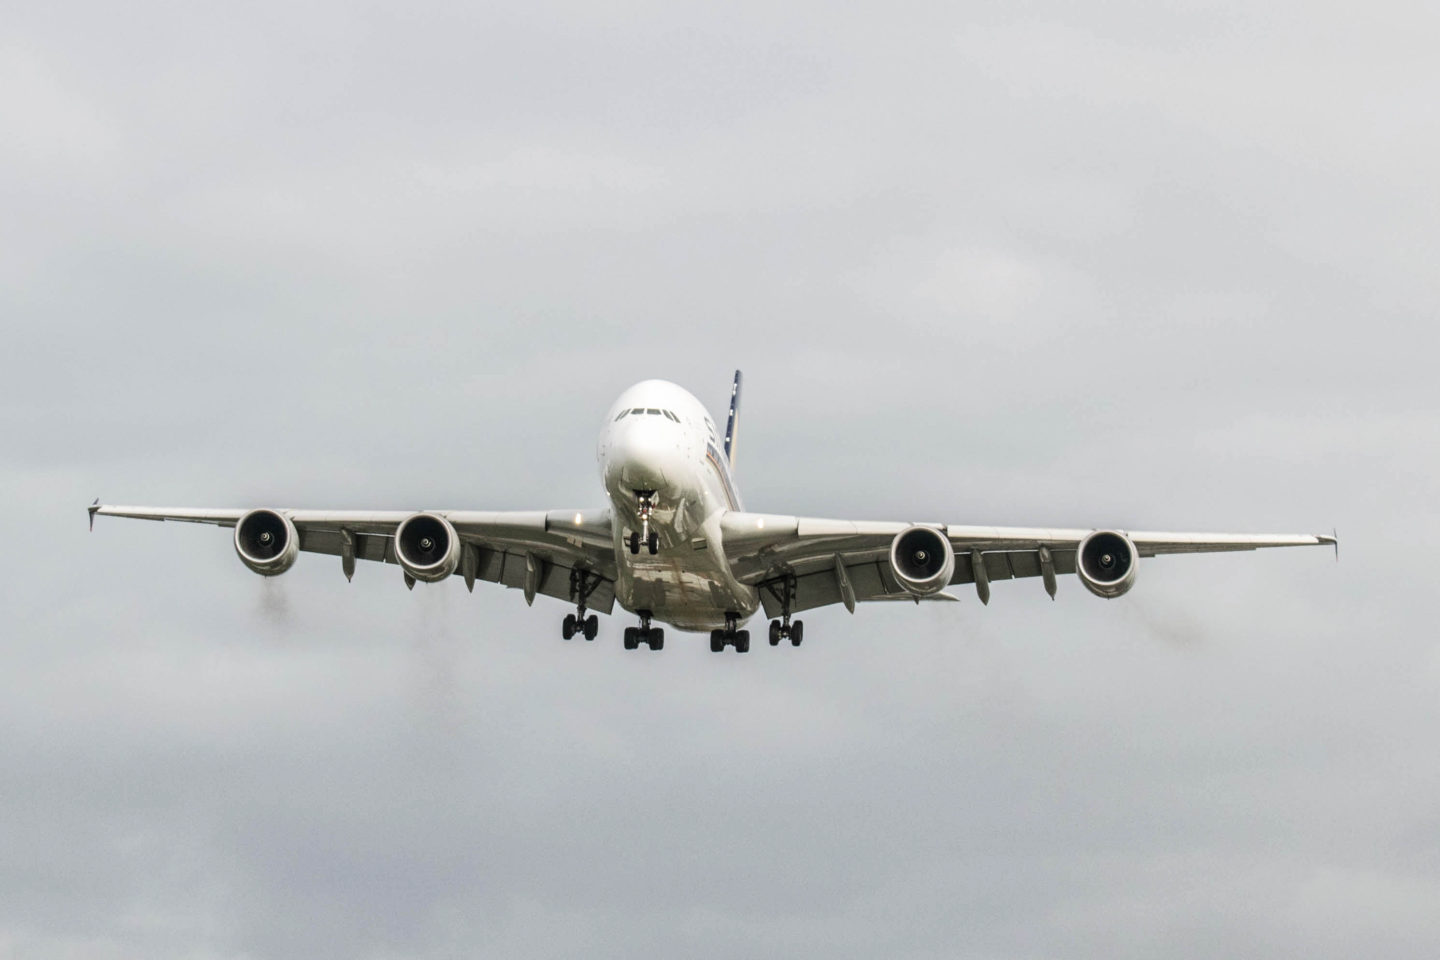 10 Years Of The Airbus A380 In Commercial Aviation – Happy Birthday To The Super Jumbo!